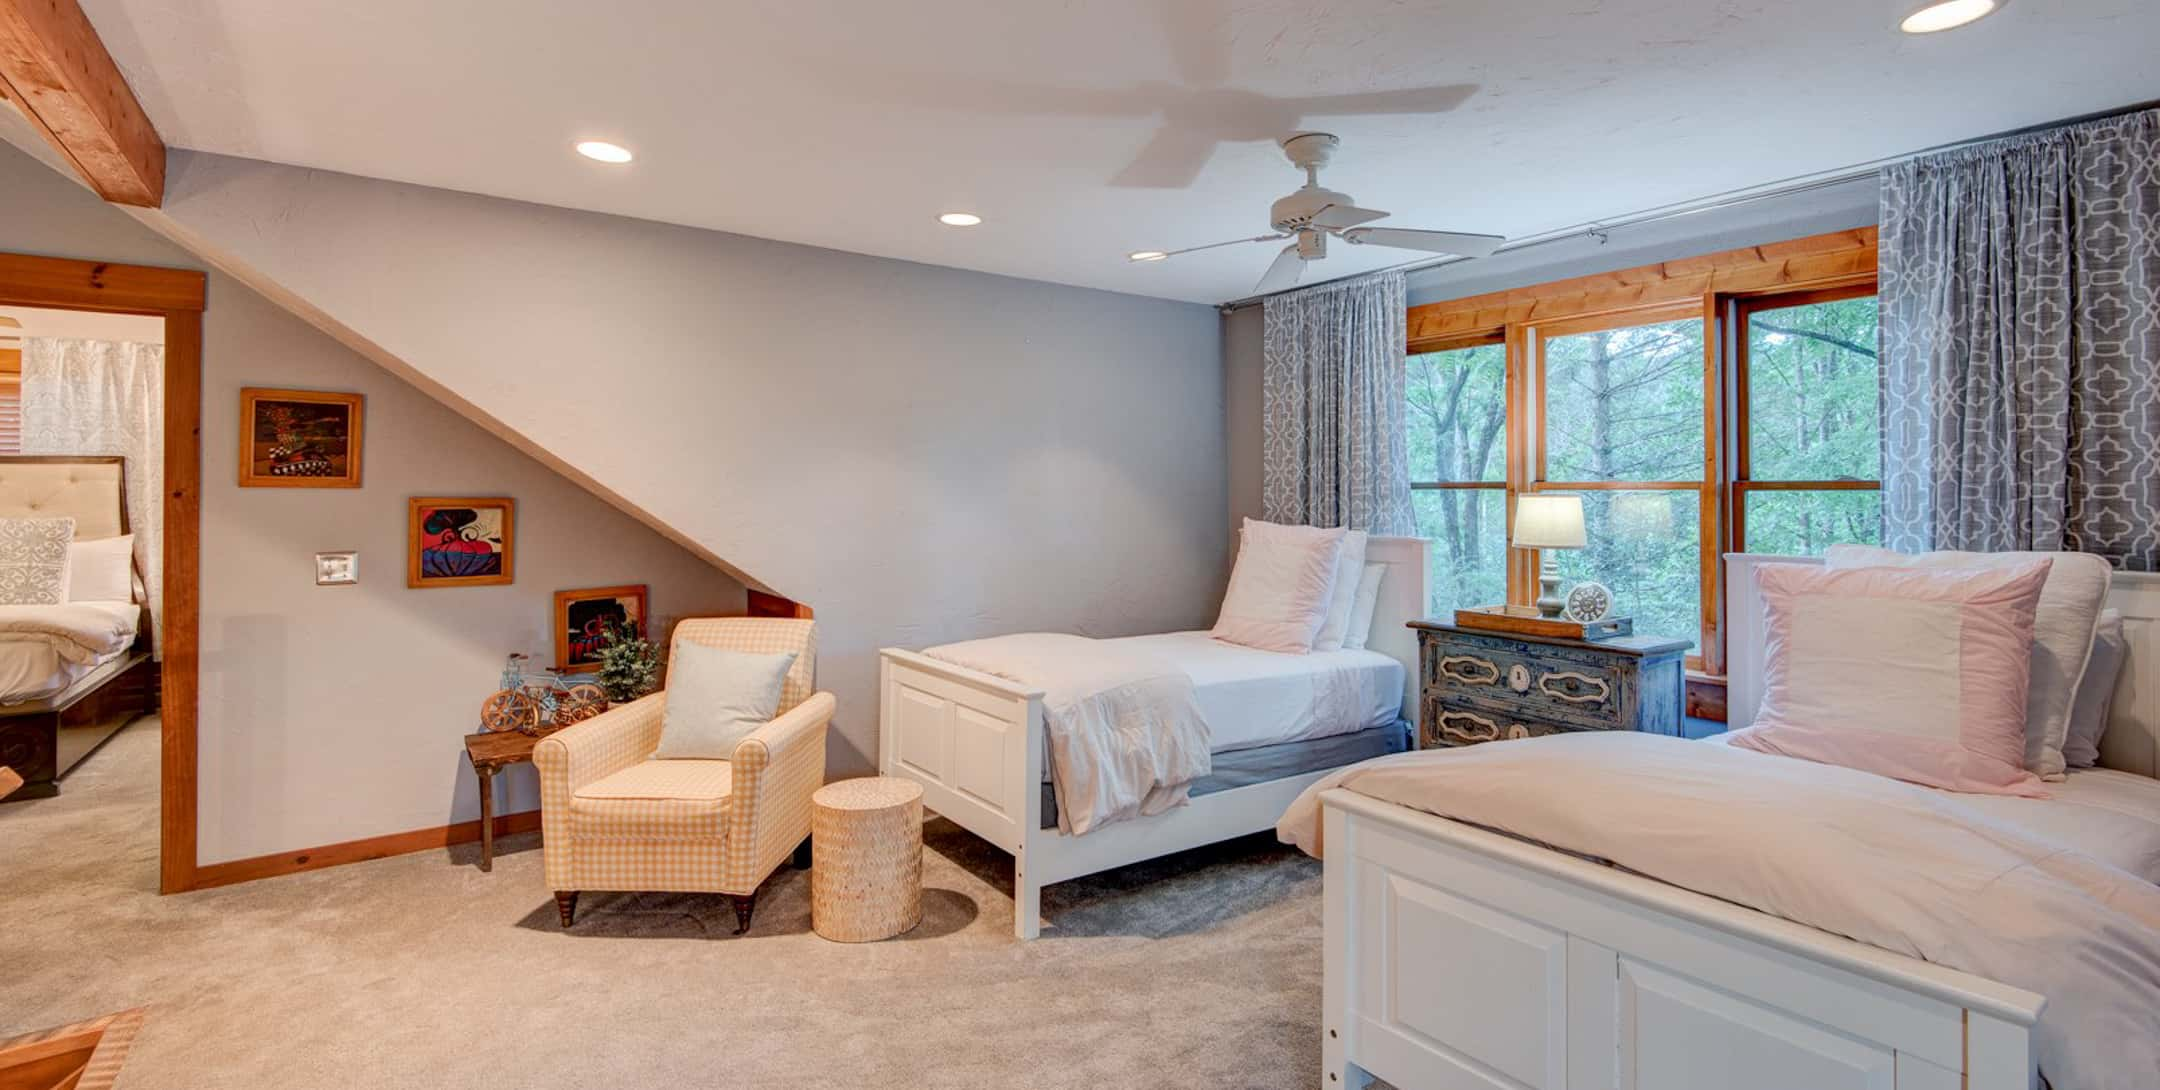 Raspberry Hill room with two beds and carpet floor